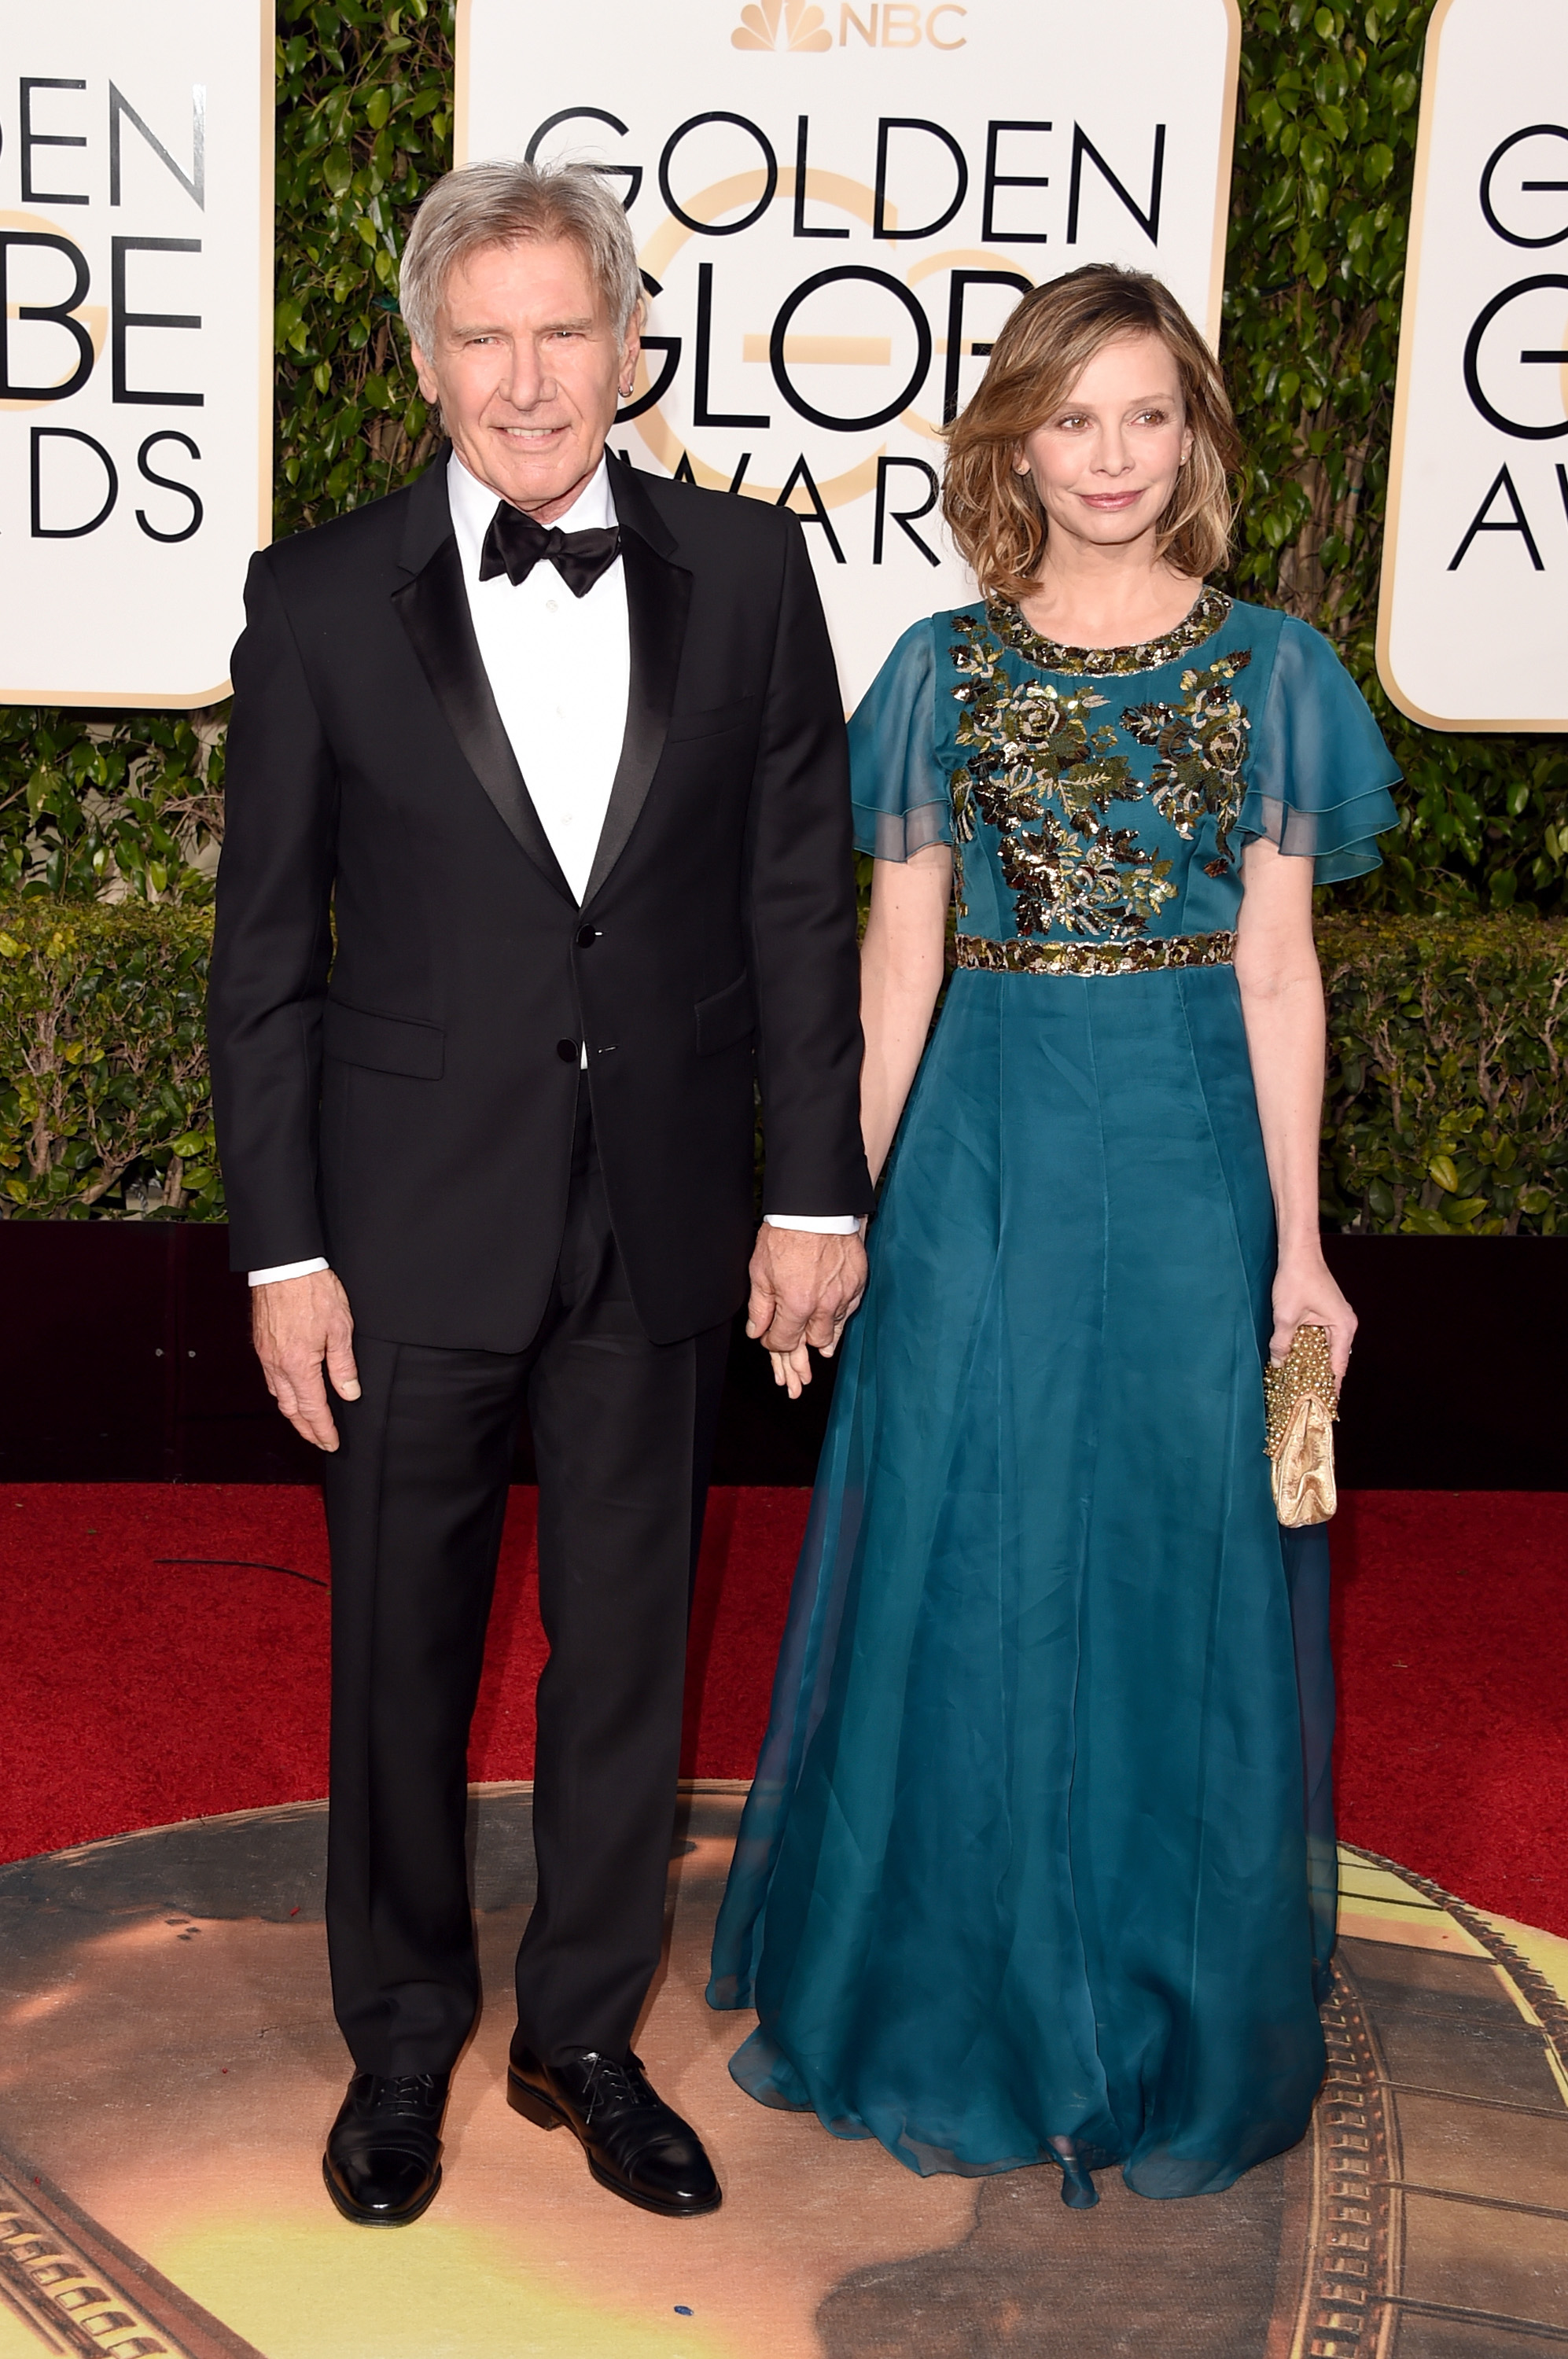 Harrison Ford and Calista Flockhart arrive to the 73rd Annual Golden Globe Awards on Jan. 10, 2016 in Beverly Hills.